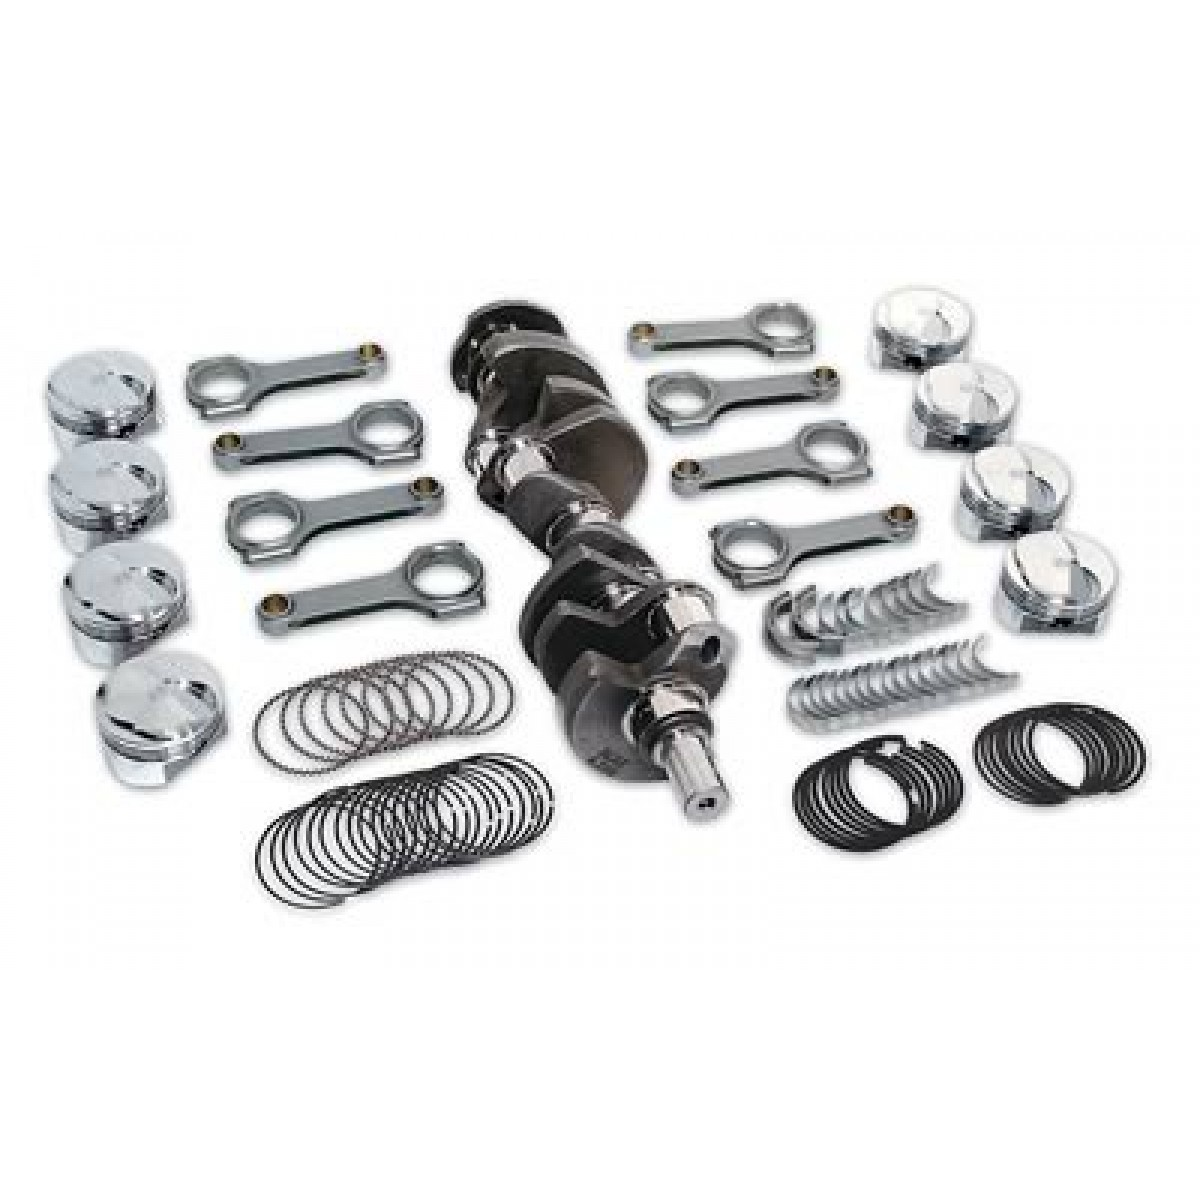 Chevy Ls 5 3l To 5 9l Scat Stroker Kit 24x Reluctor 7cc